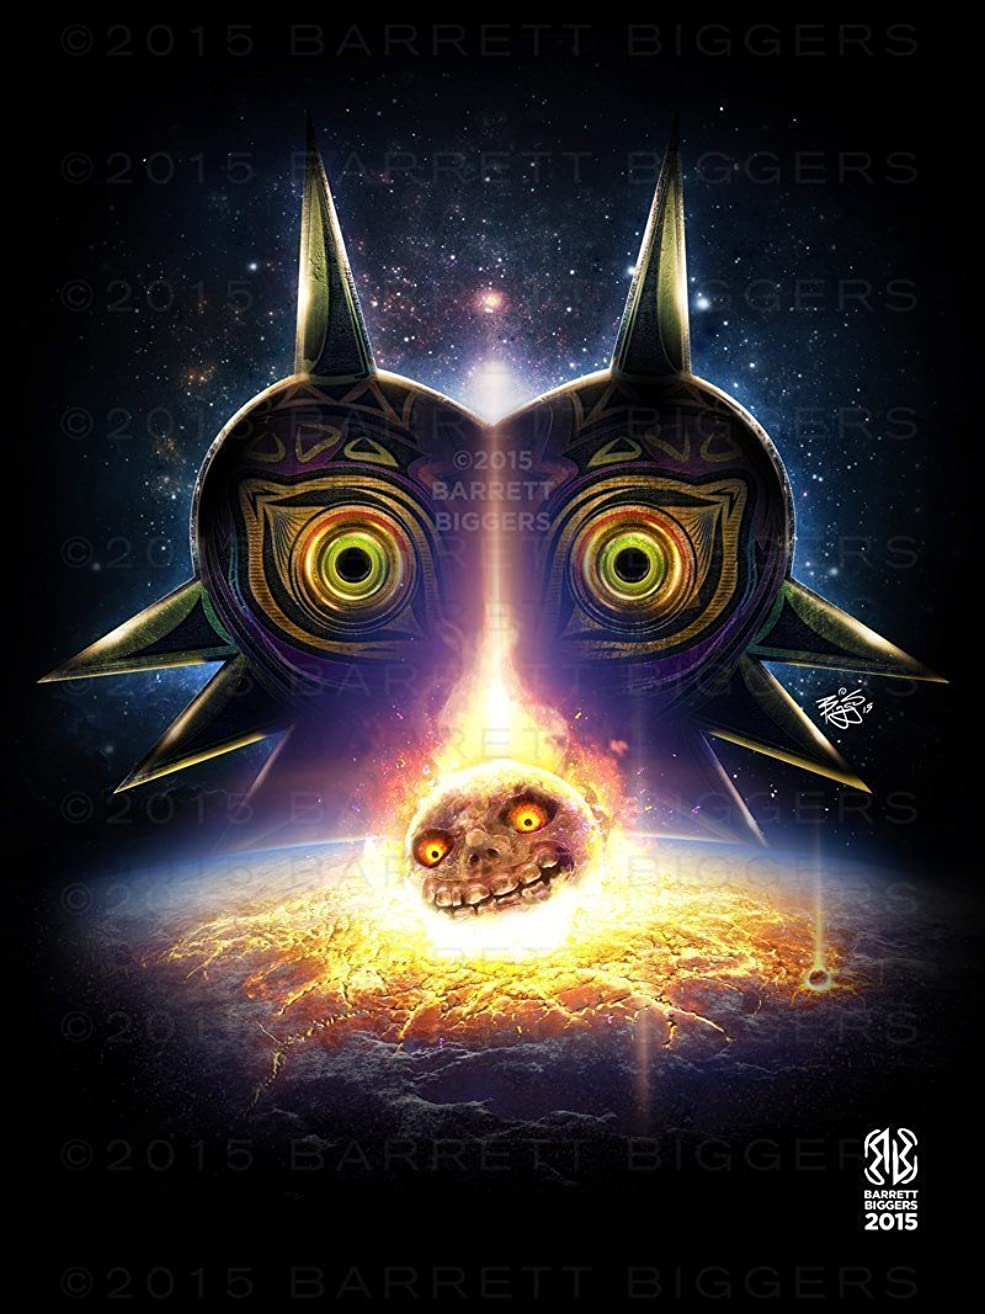 Legend of Zelda Game Inspired Majora's Mask Moon Fall Game Movie Poster Archival Giclèe Print